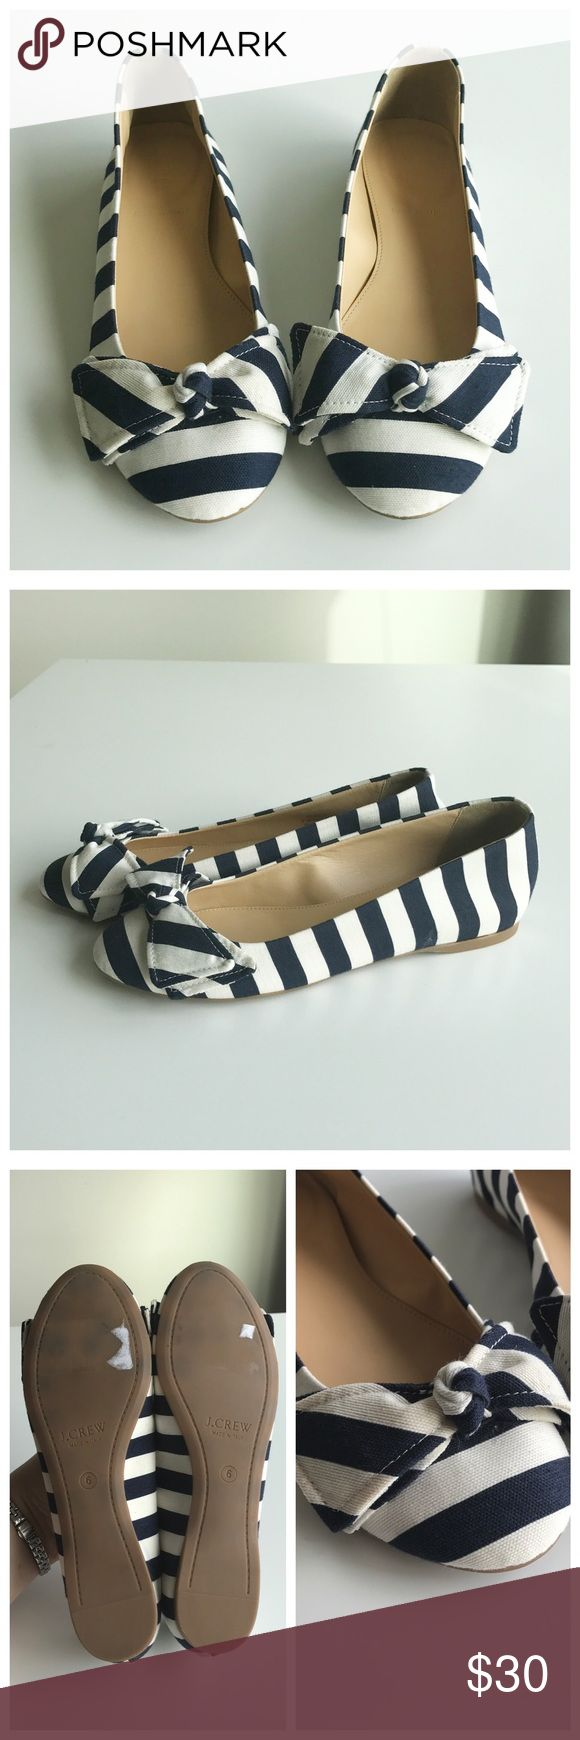 J. Crew NWOT Nautical Stripe Flats Fabric outside, navy and white stripe, nautical flats. These shoes have never been worn! Only flaw is that there are some sticker marks on the bottom of the shoe. J. Crew Shoes Flats & Loafers